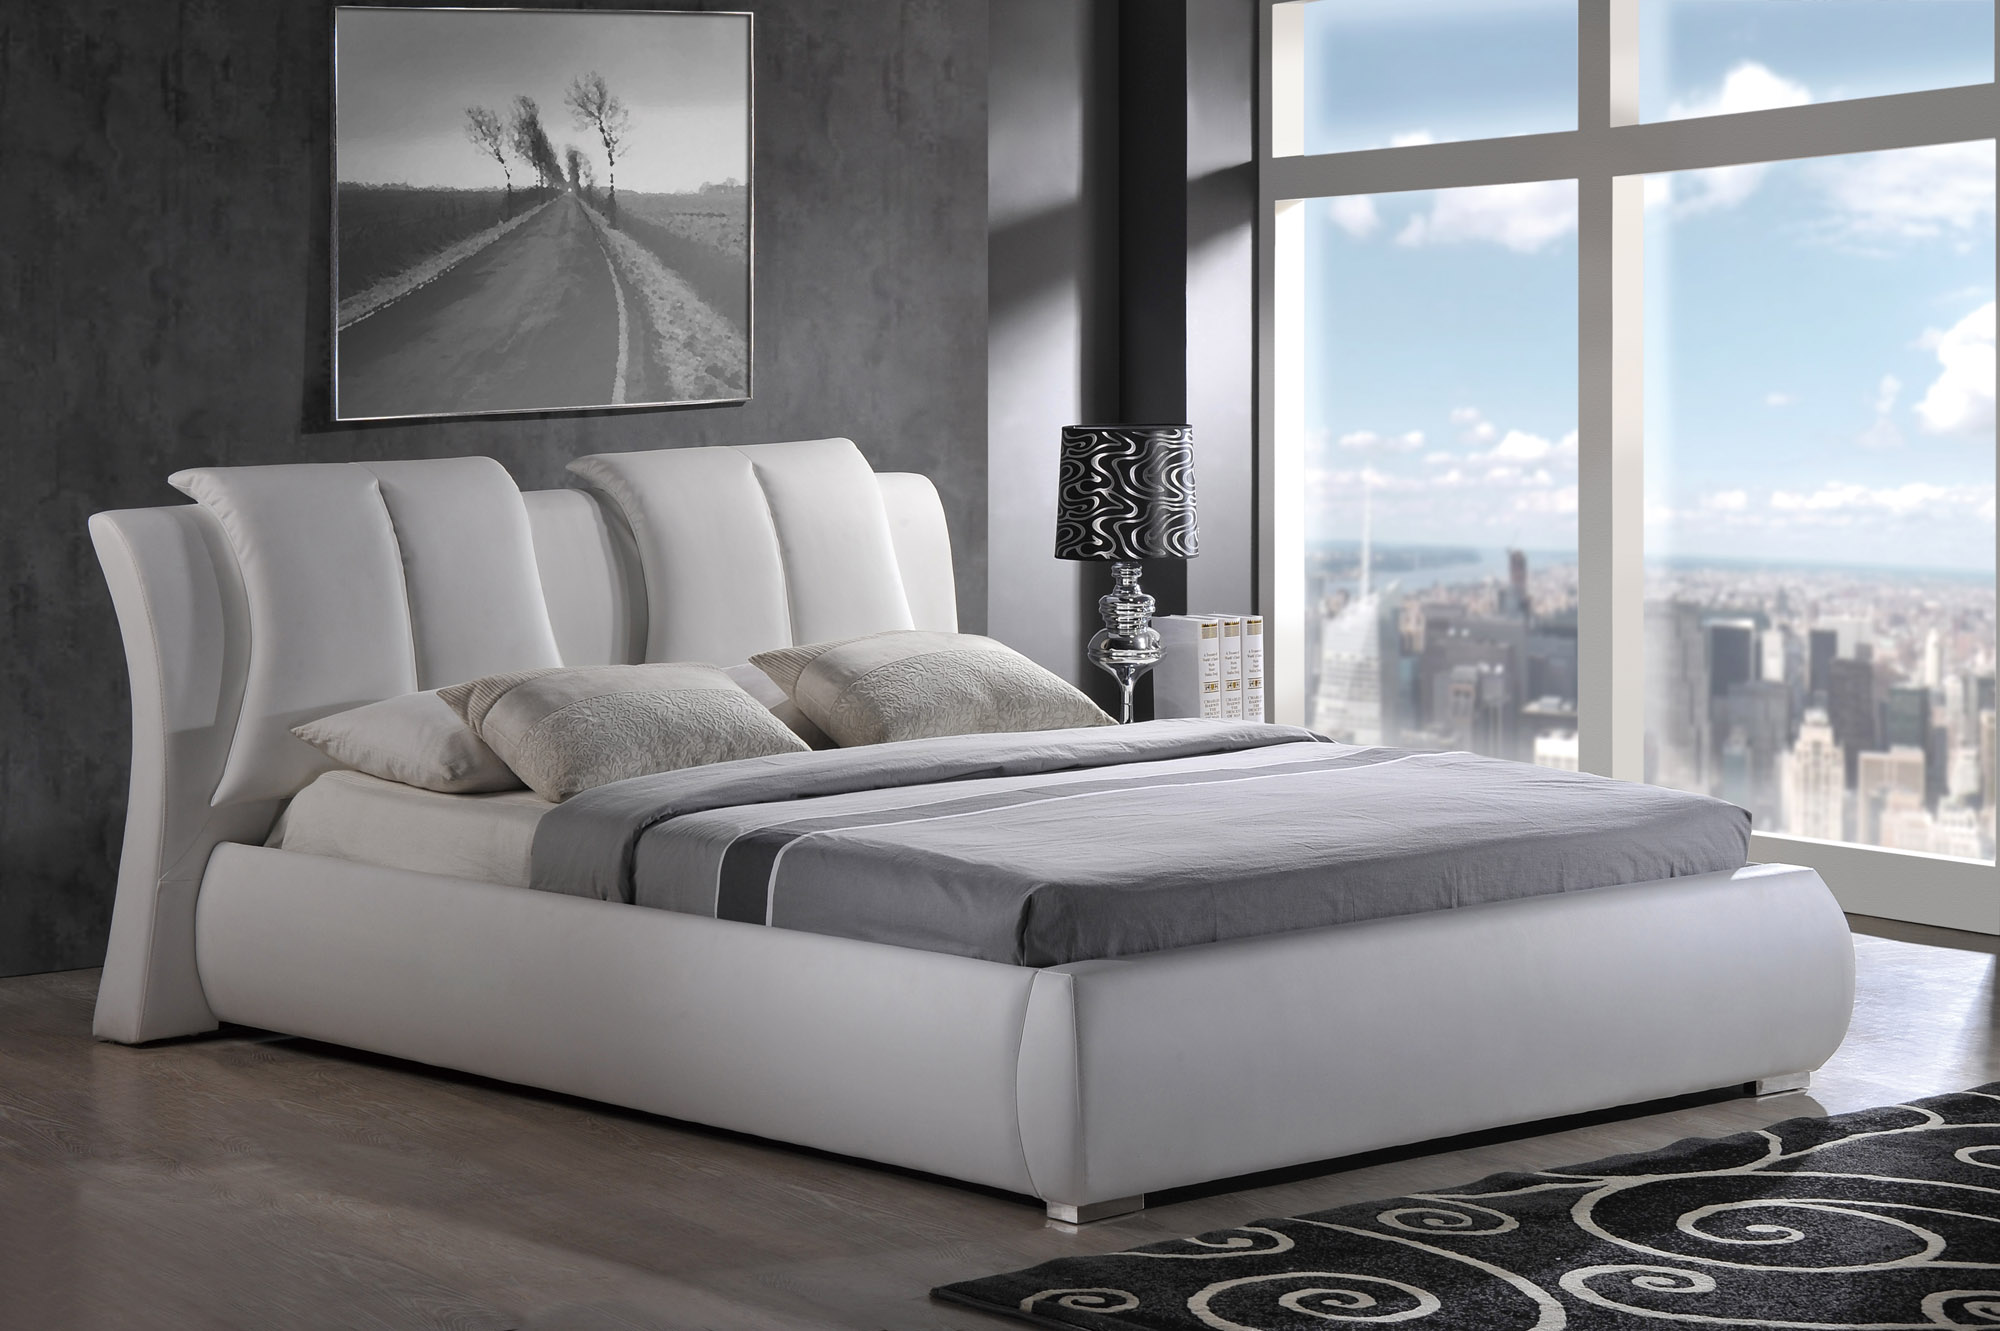 High class leather luxury platform bed new york new york for Bedroom set and mattress